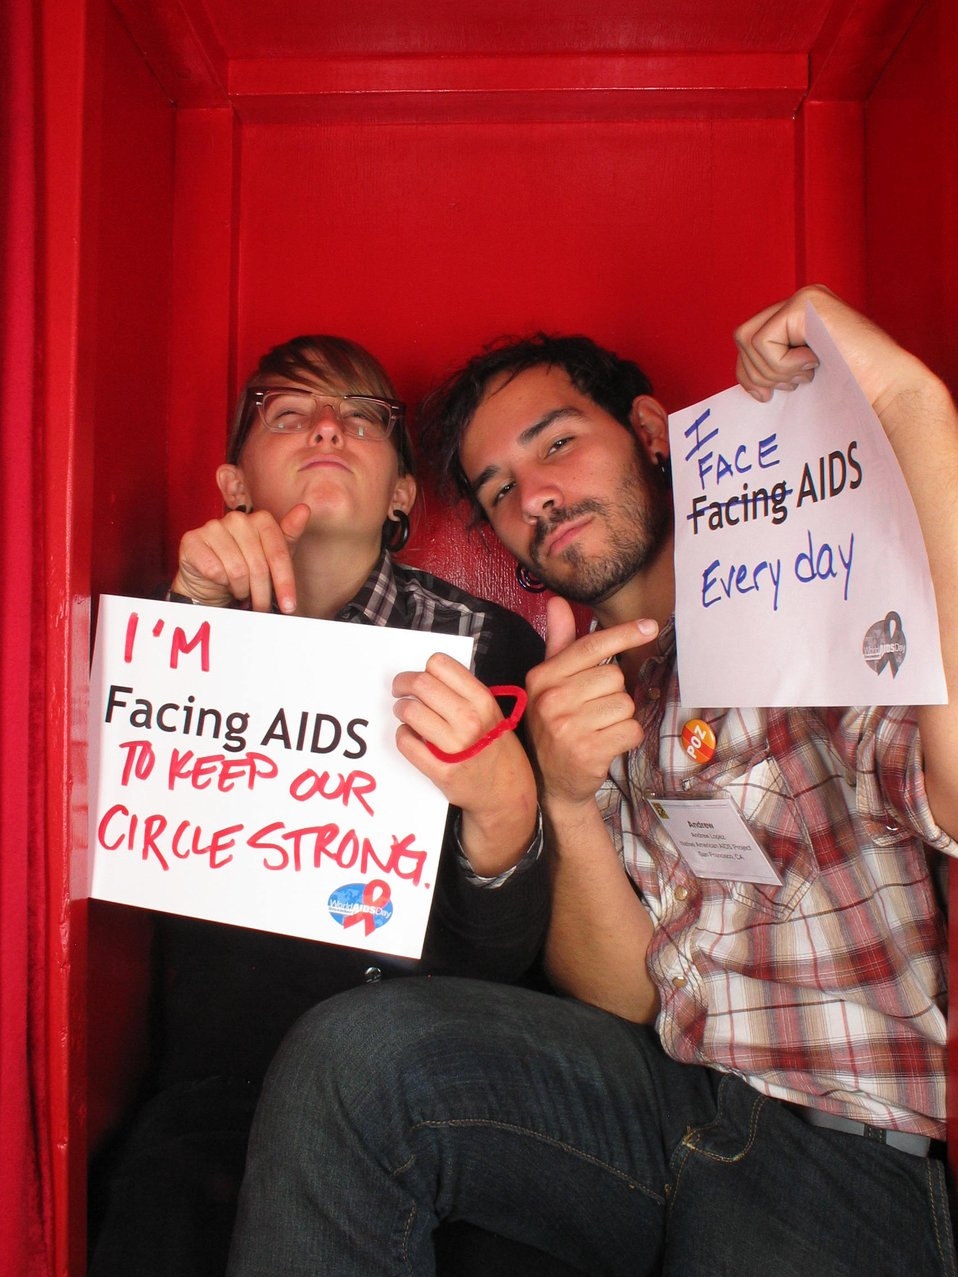 I am Facing AIDS to keep our circle strong. I face AIDS everyday.